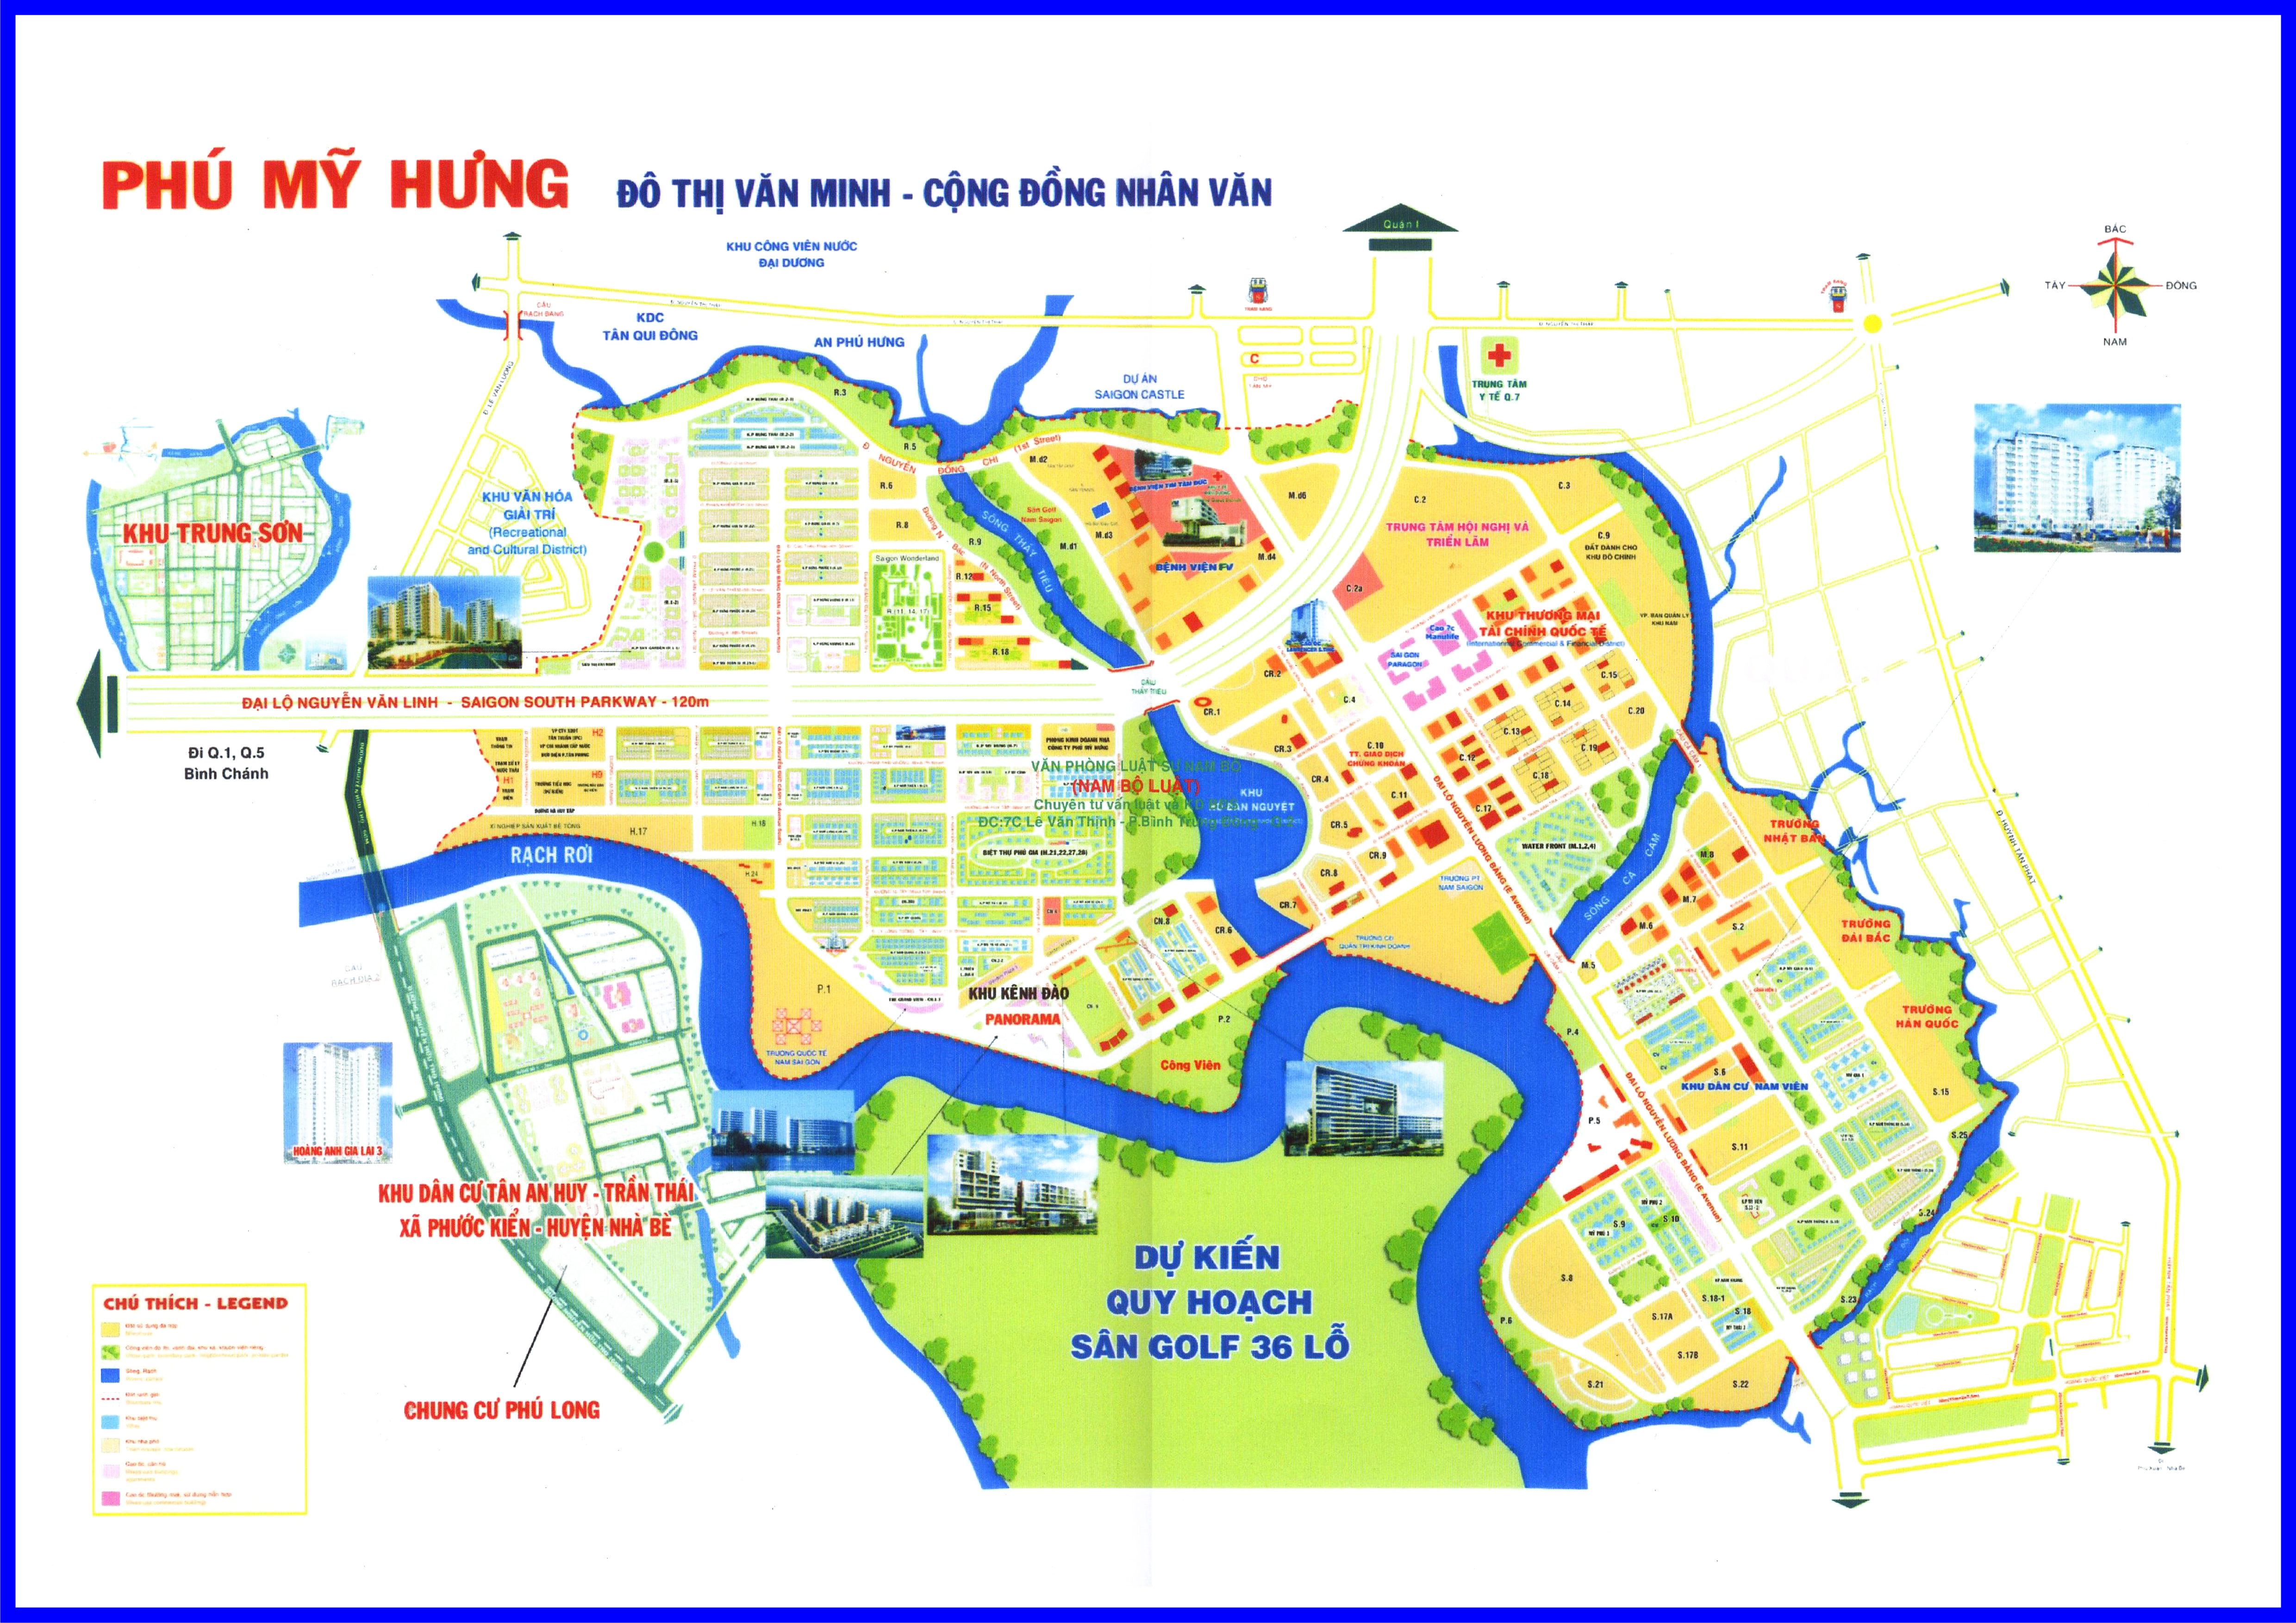 Phú Mỹ Hưng and District 7 Maps – New Urban Vietnam